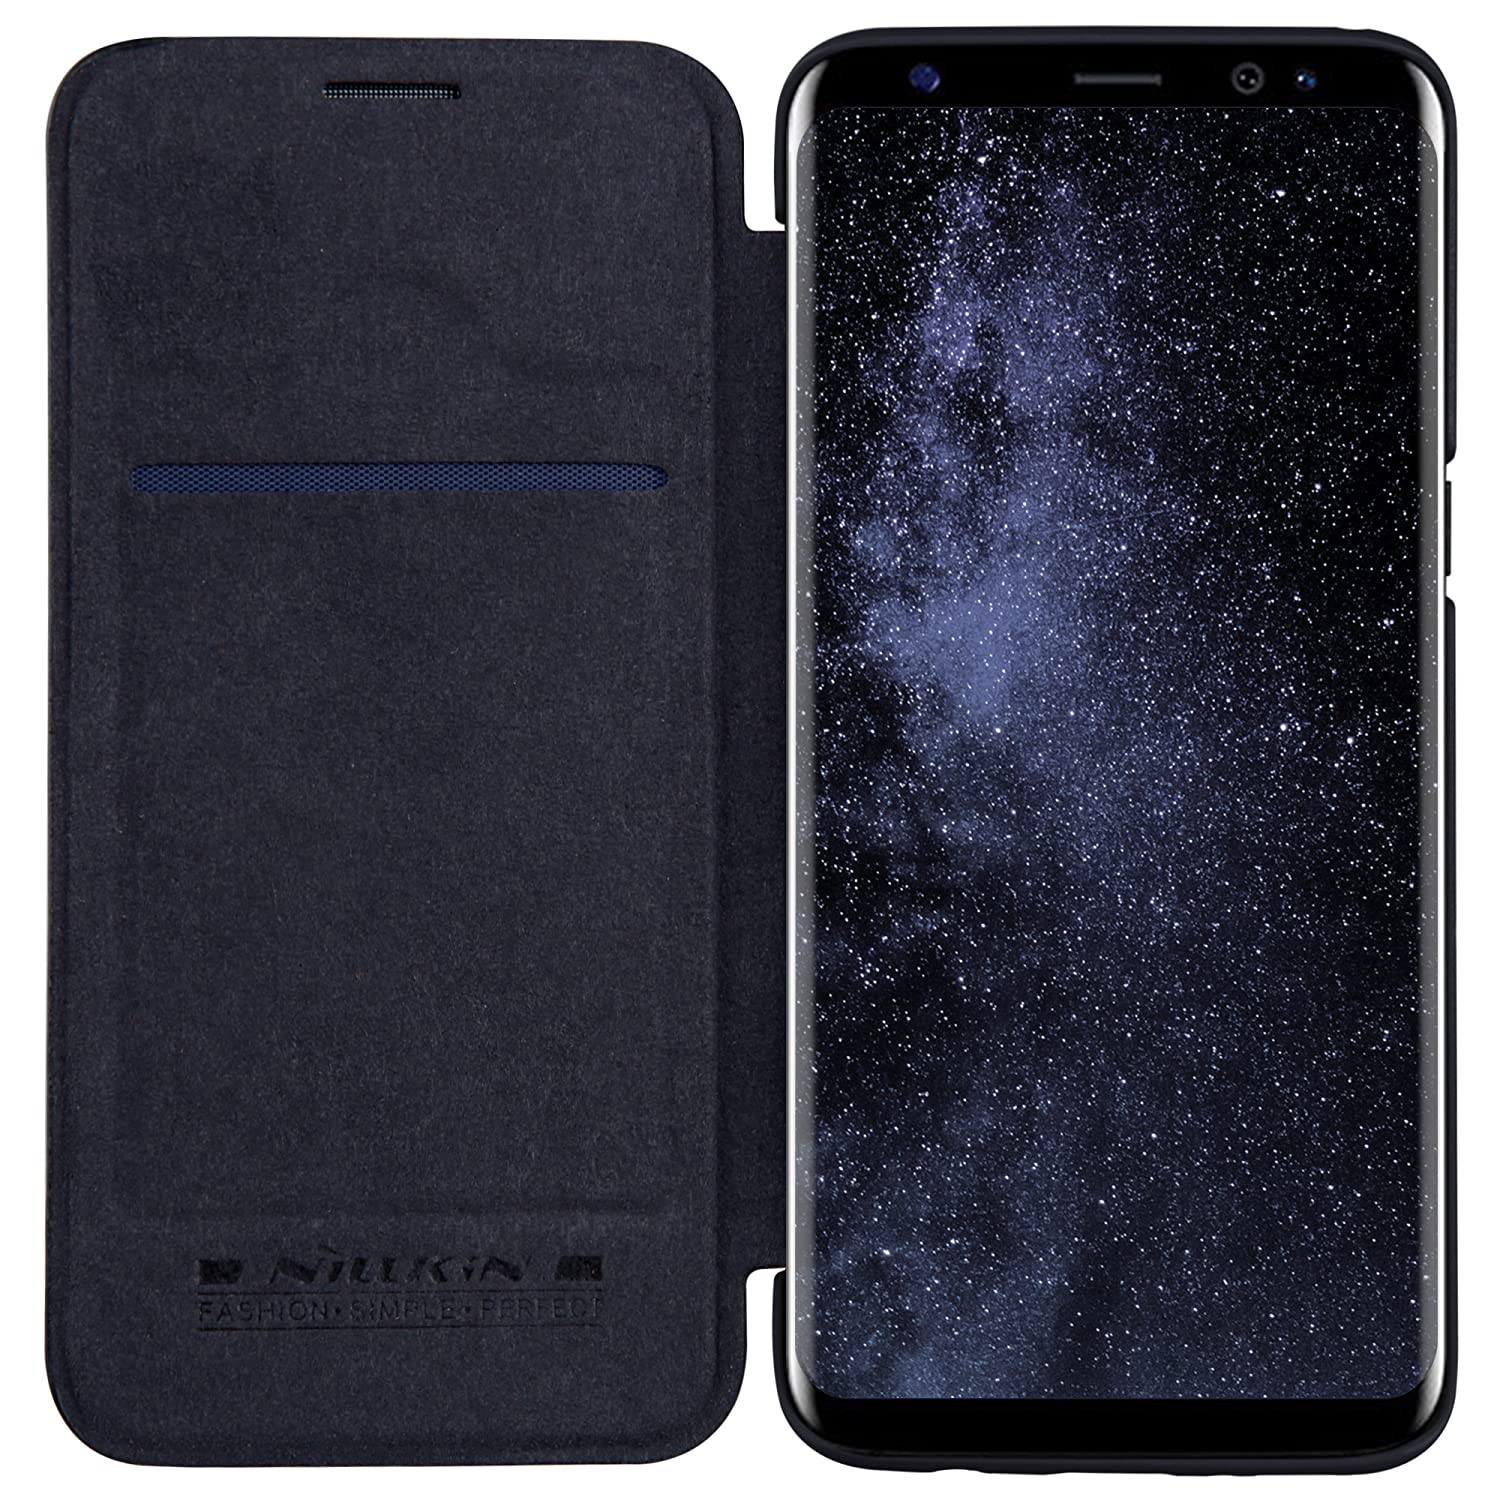 purchase cheap b5cc1 2d90f Nillkin Qin Series Royal Leather Flip Case Cover Case For Samsung Galaxy S8  - Black